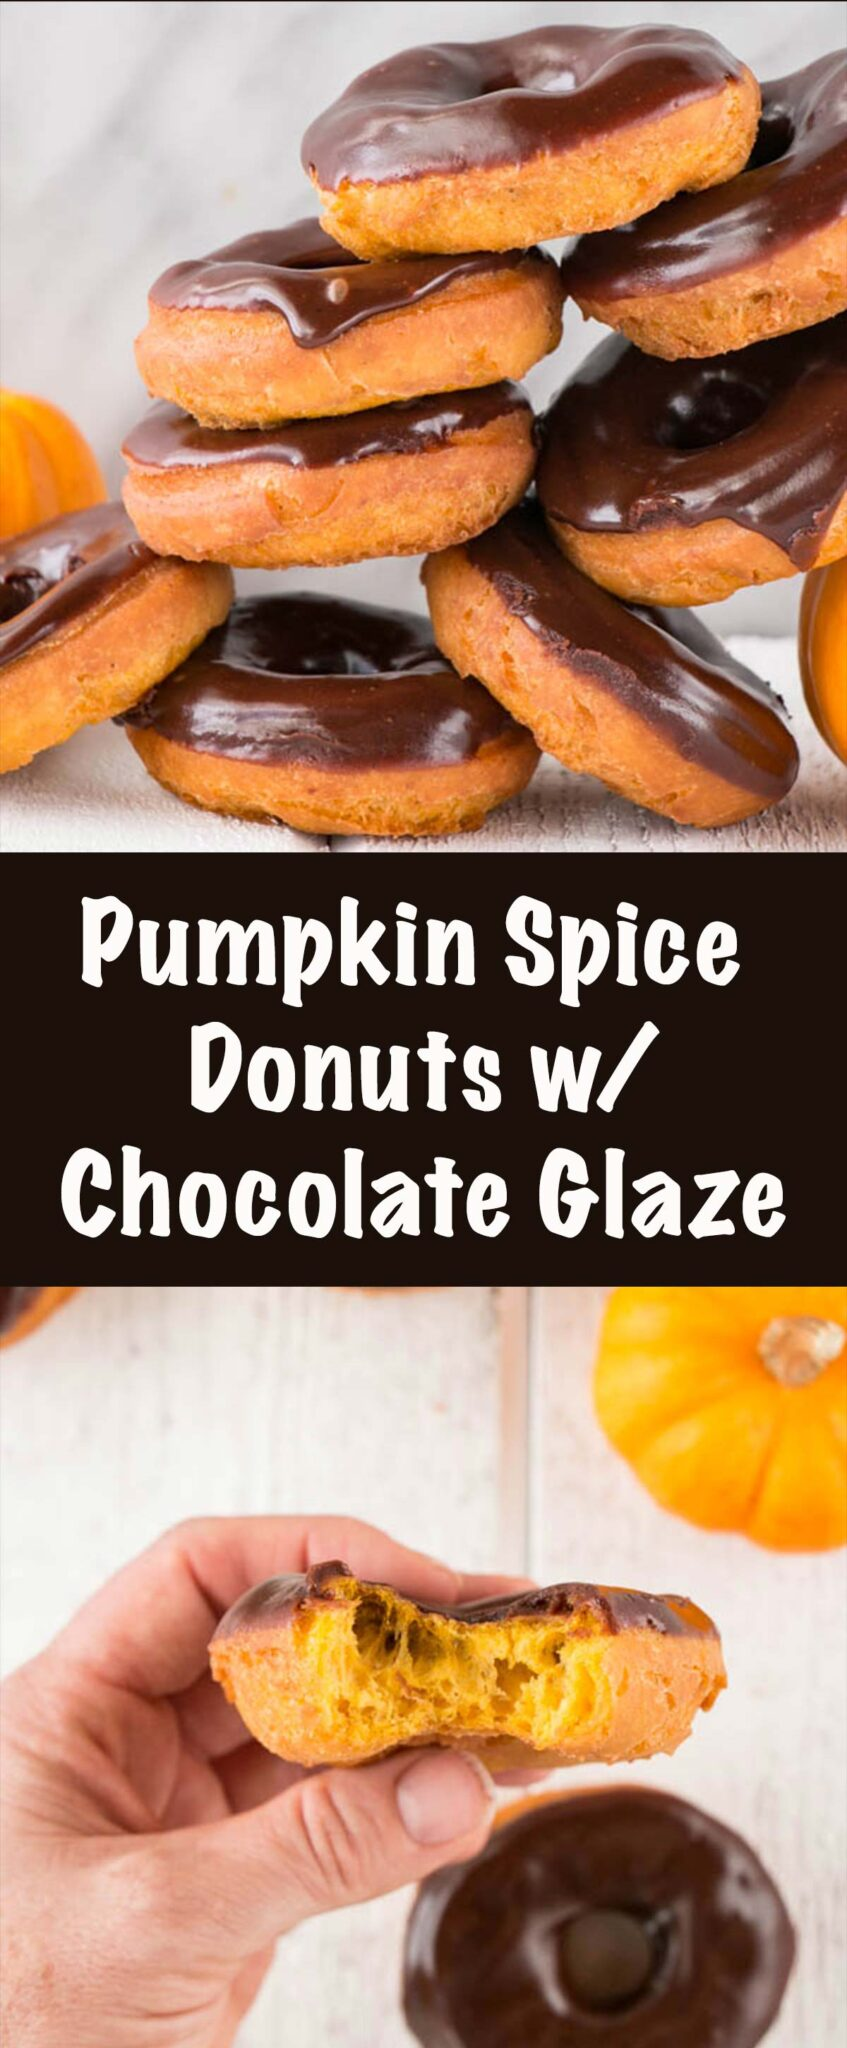 Long pin imagoes a tower of pumpkin spice donuts with chocolate glaze and a few donuts with a small gourd.